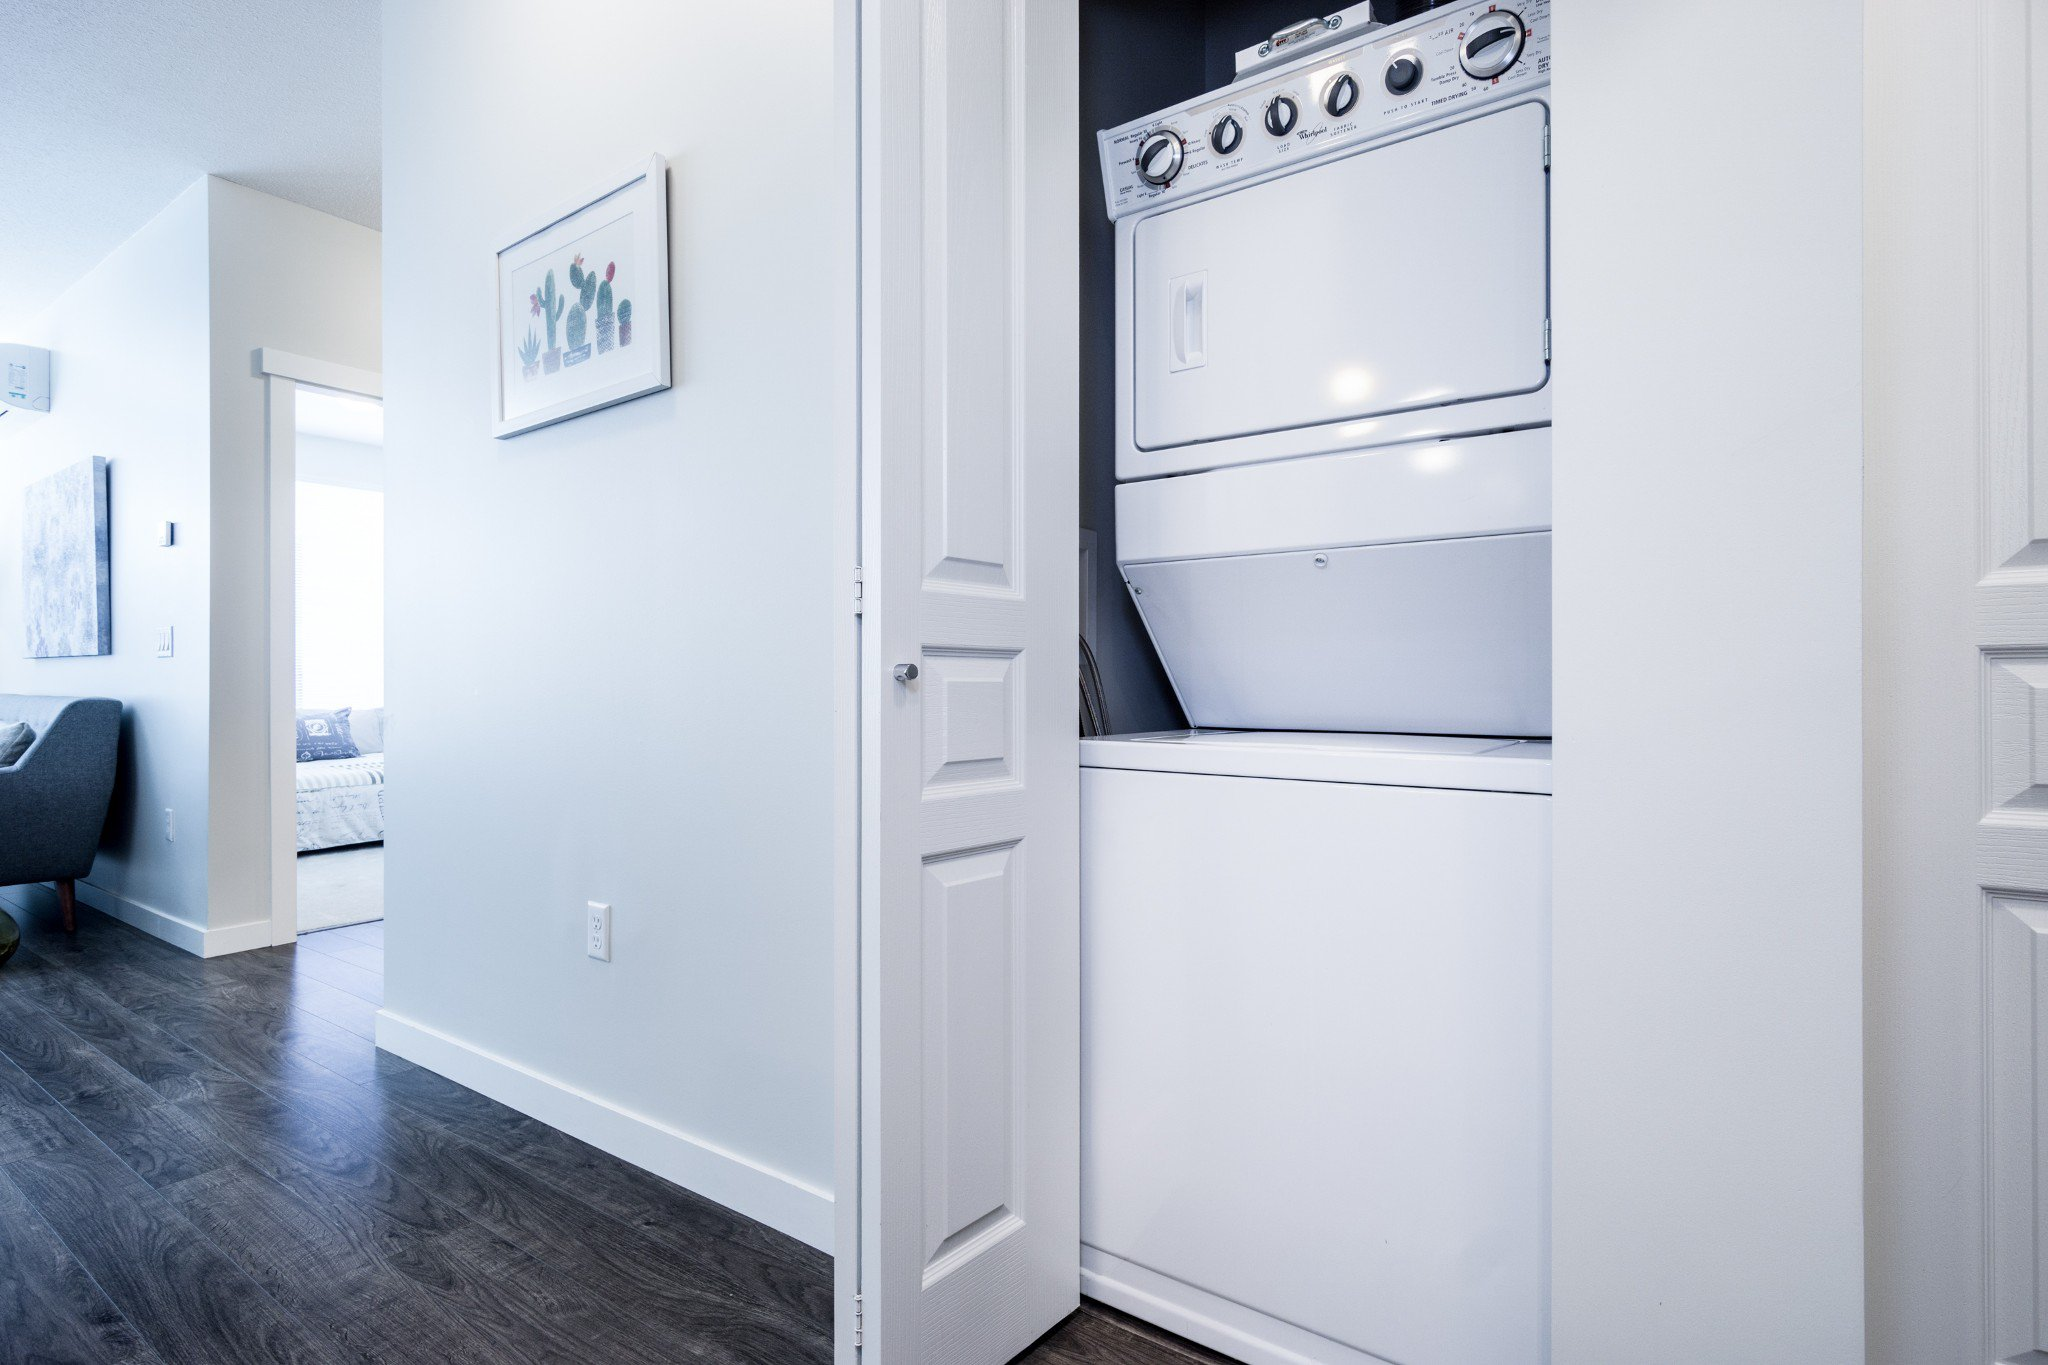 """Photo 28: Photos: 402 9311 ALEXANDRA Road in Richmond: West Cambie Condo for sale in """"ALEXANDRA COURT"""" : MLS®# R2266613"""